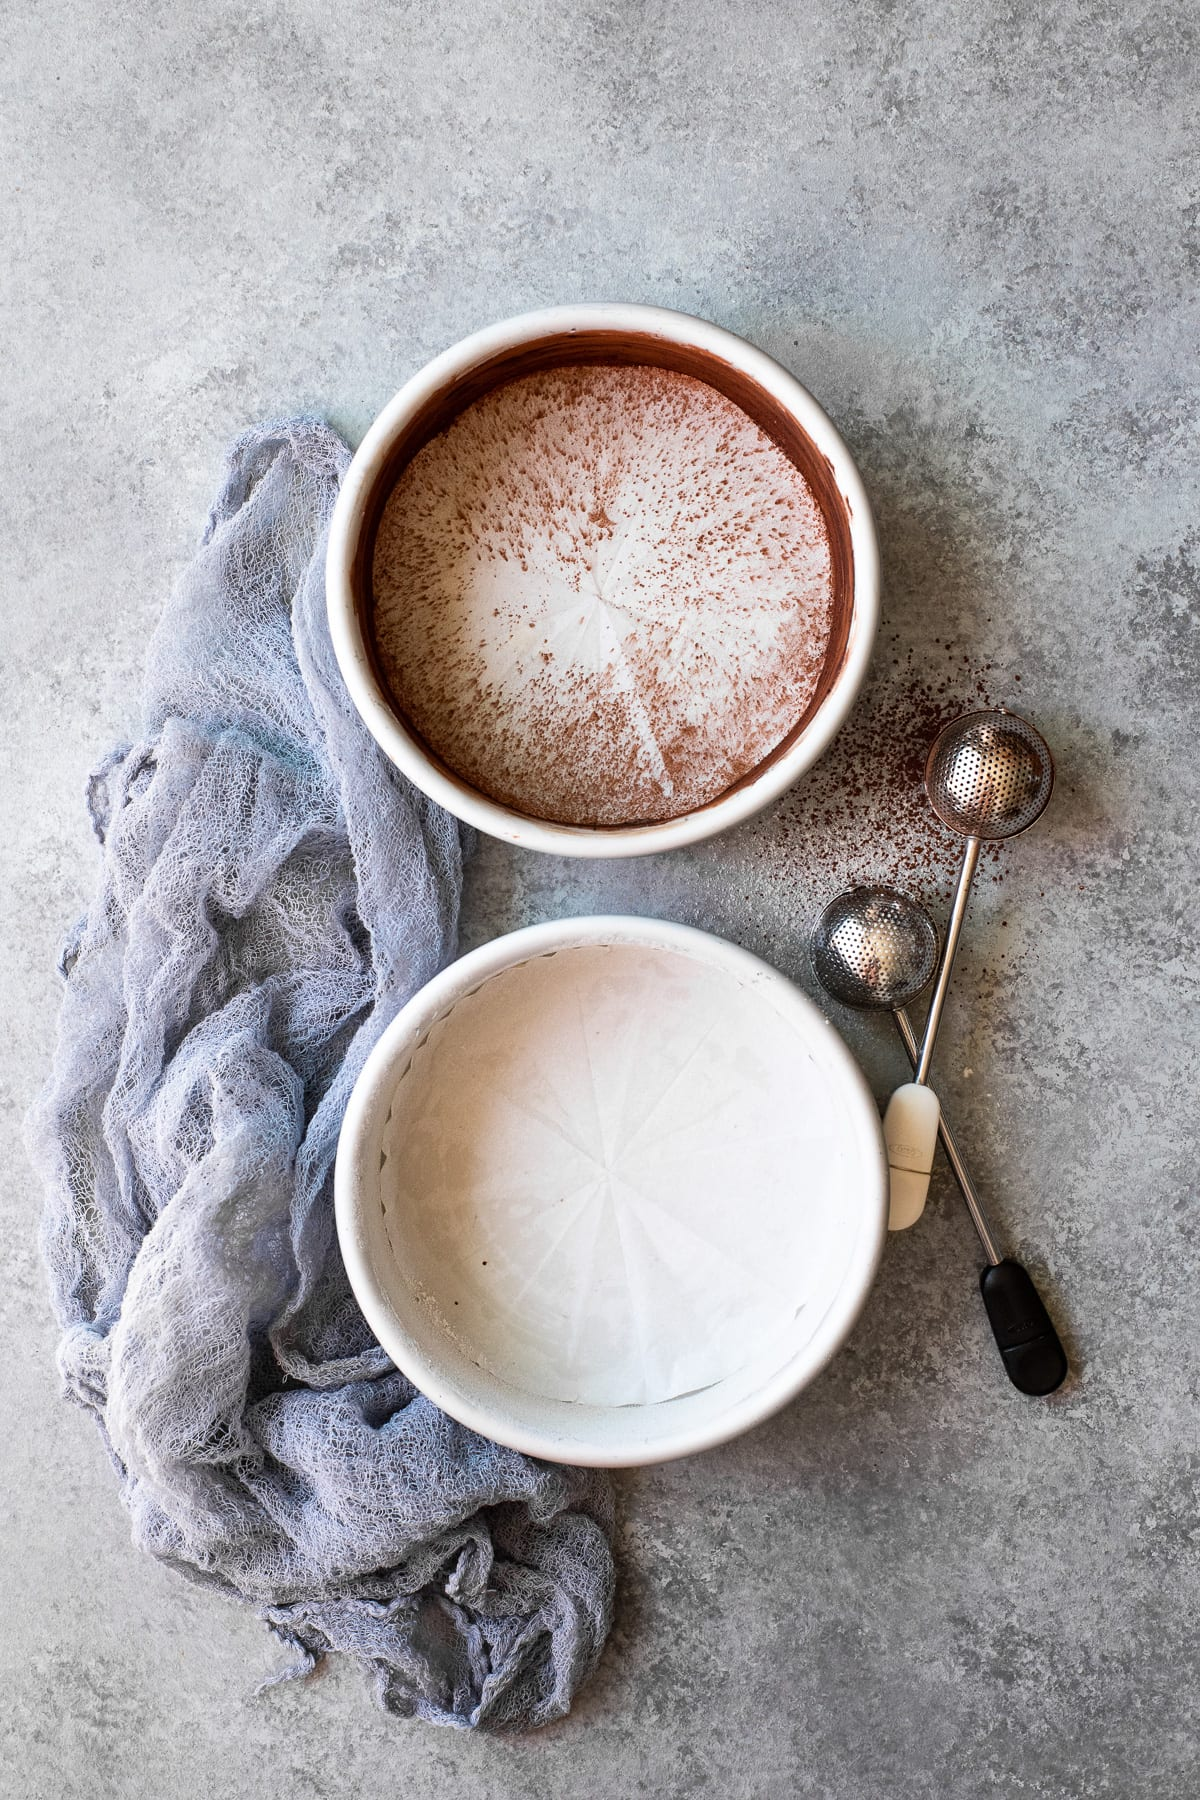 Two cake pans greased, floured, and lined with parchment